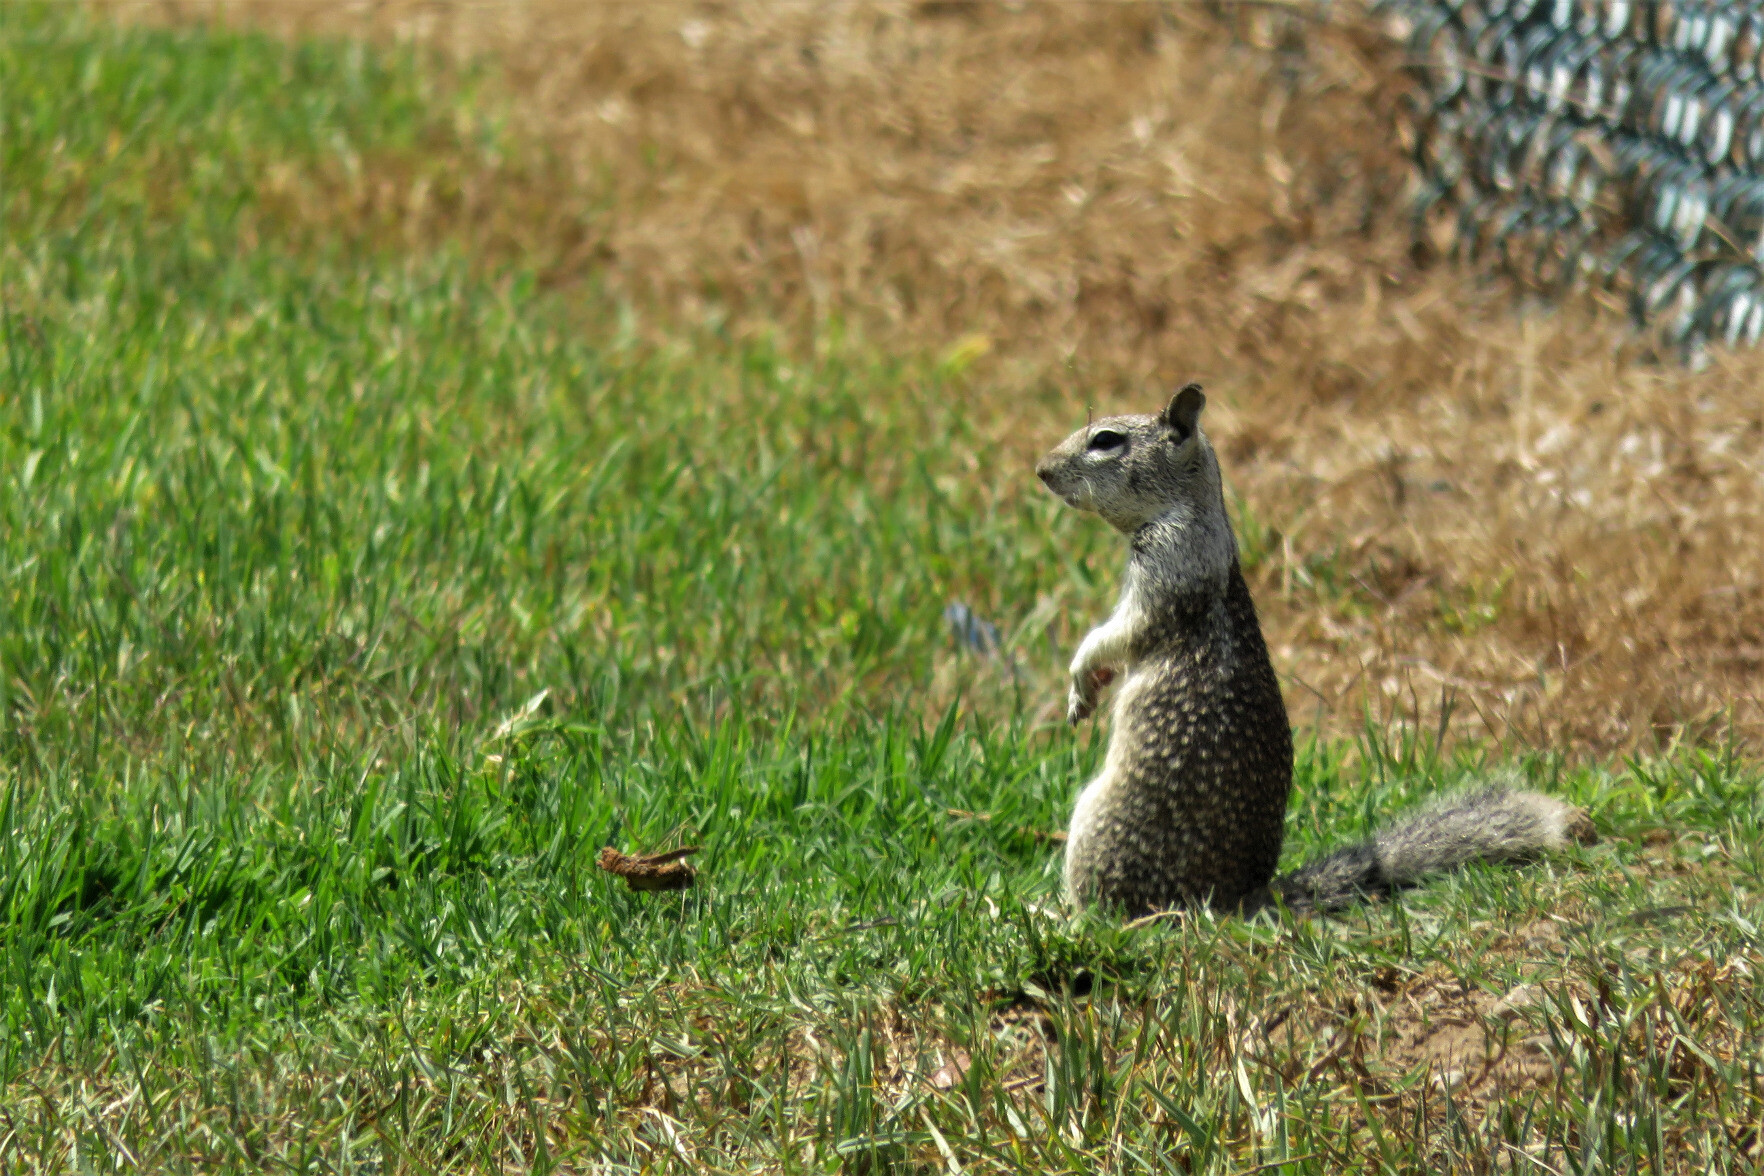 A light gray squirrel with a mottled coat standing up in the grass in front of a fence, looking into the distance.